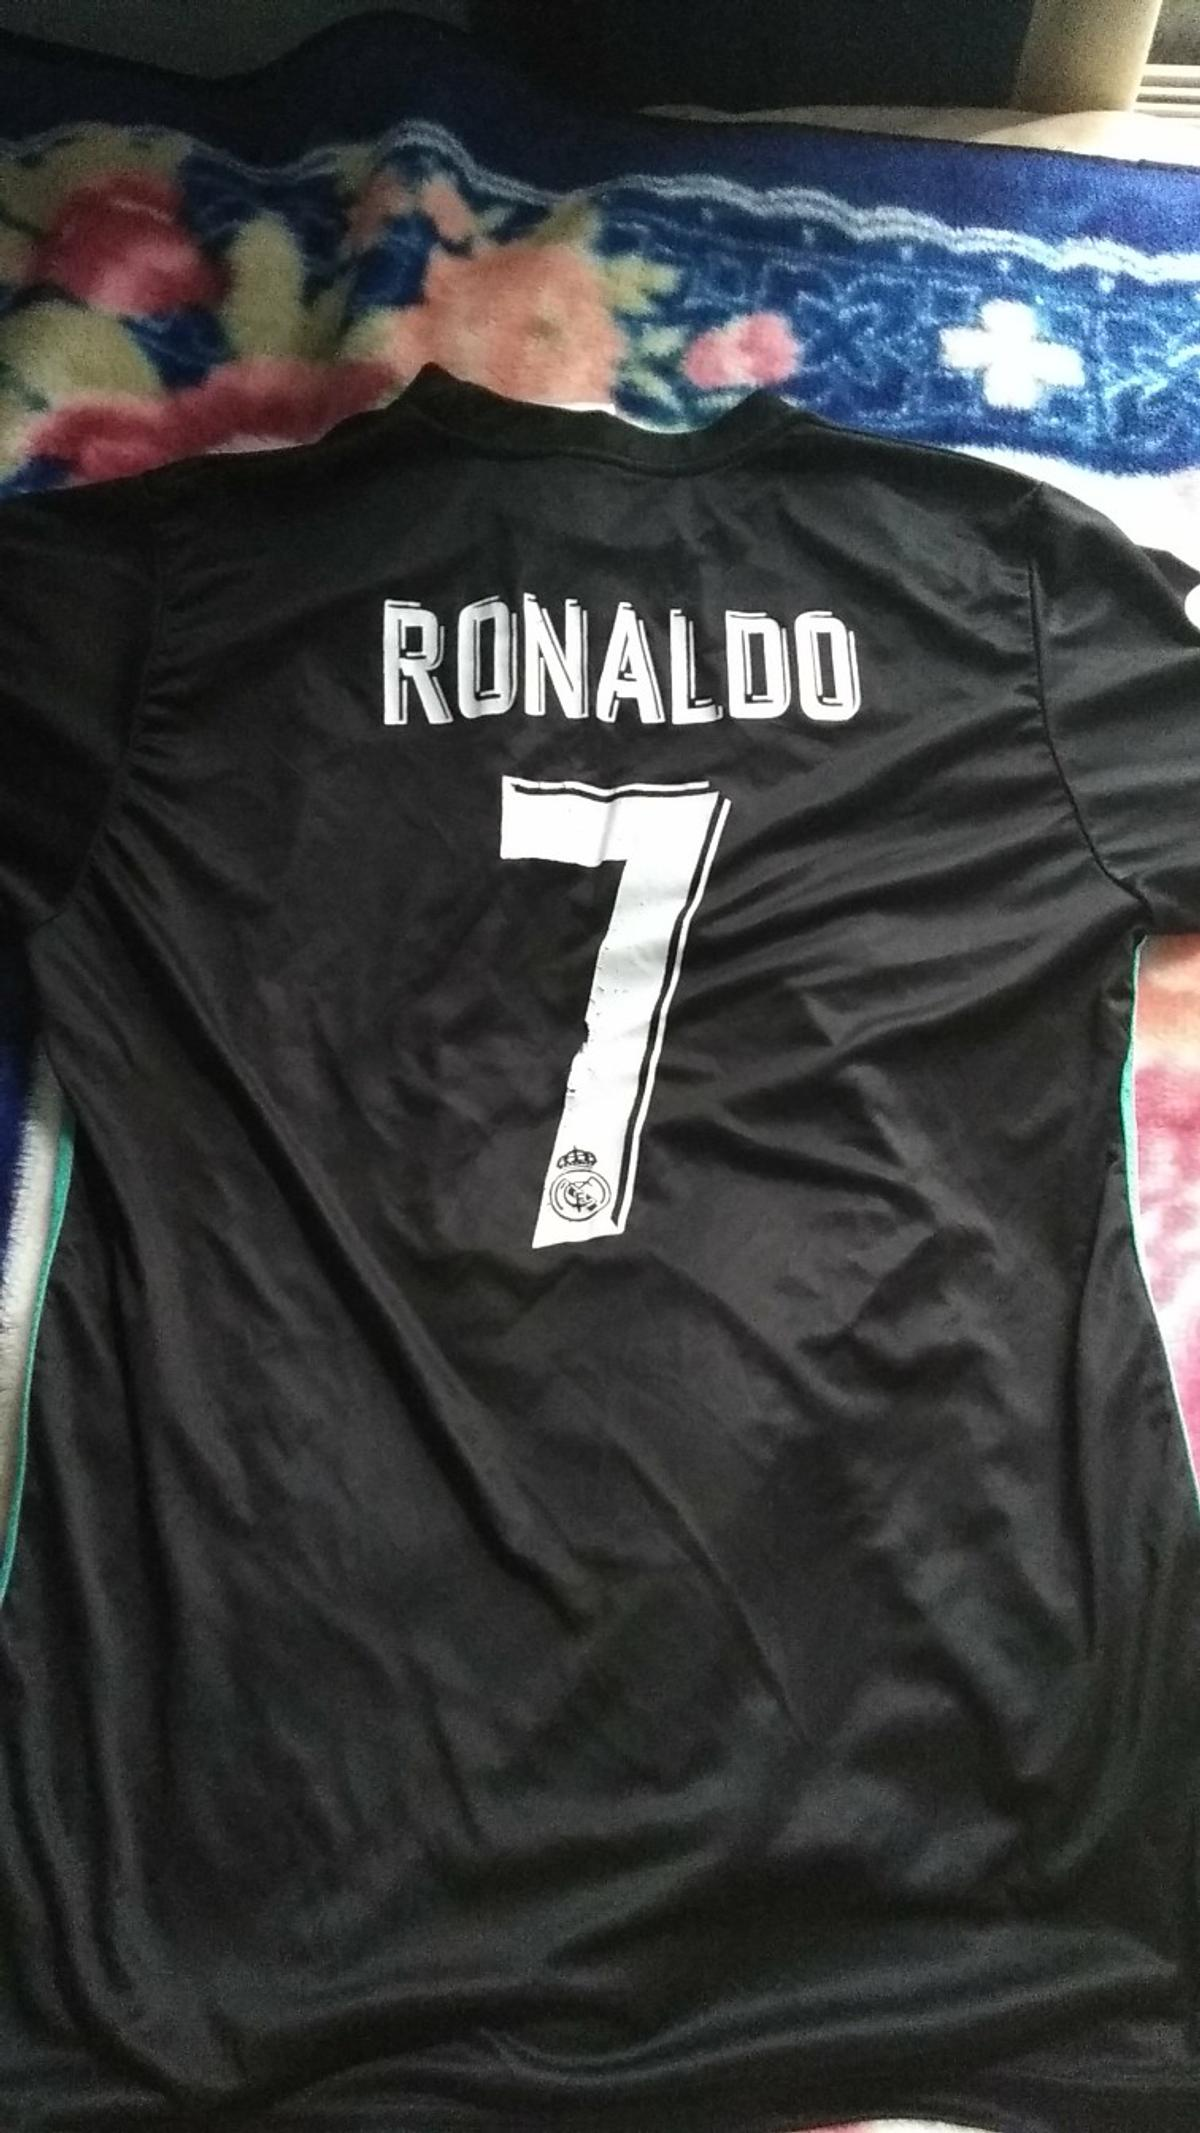 new product 3e15d a338d Real Madrid Ronaldo Shirt